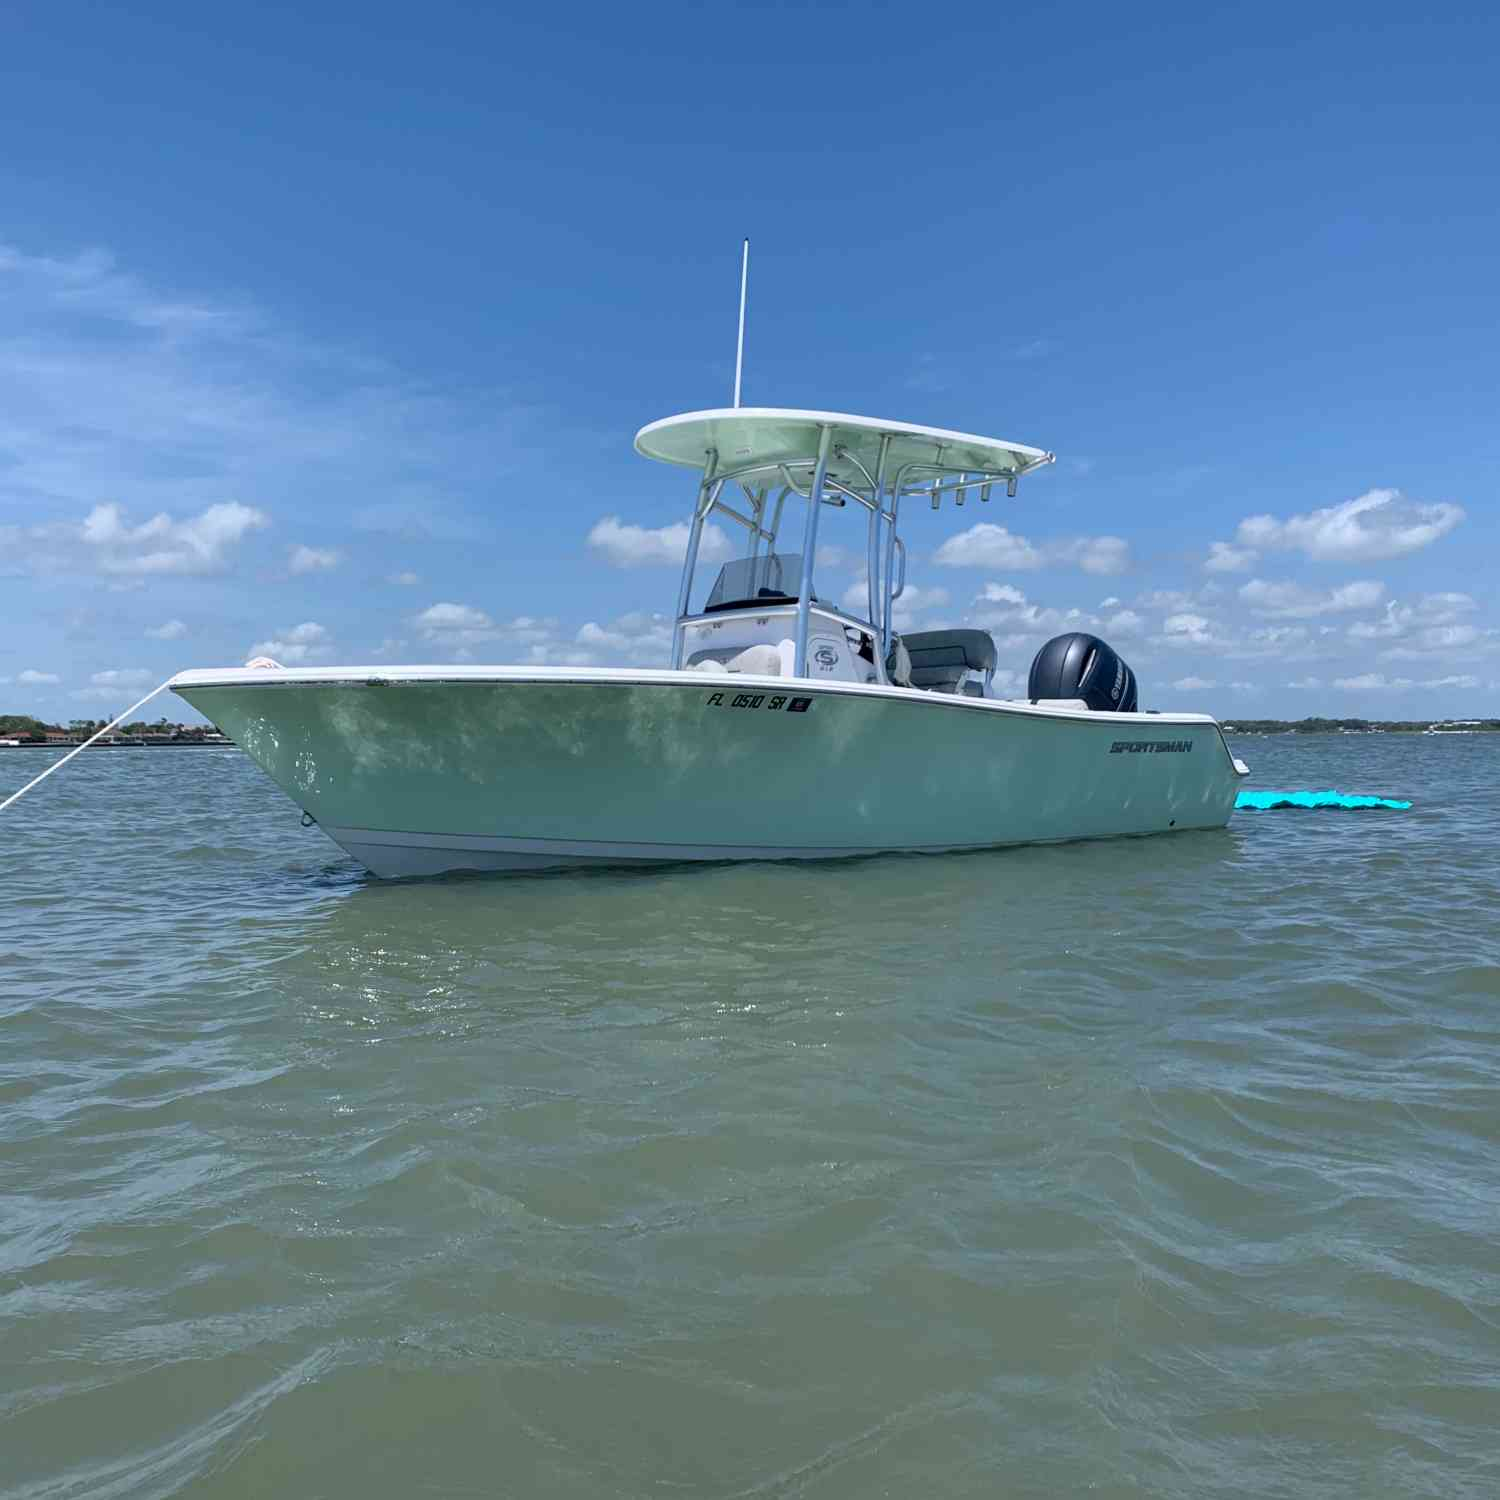 Title: Beach time - On board their Sportsman Open 212 Center Console - Location: St Augustine do. Participating in the Photo Contest #SportsmanJune2020